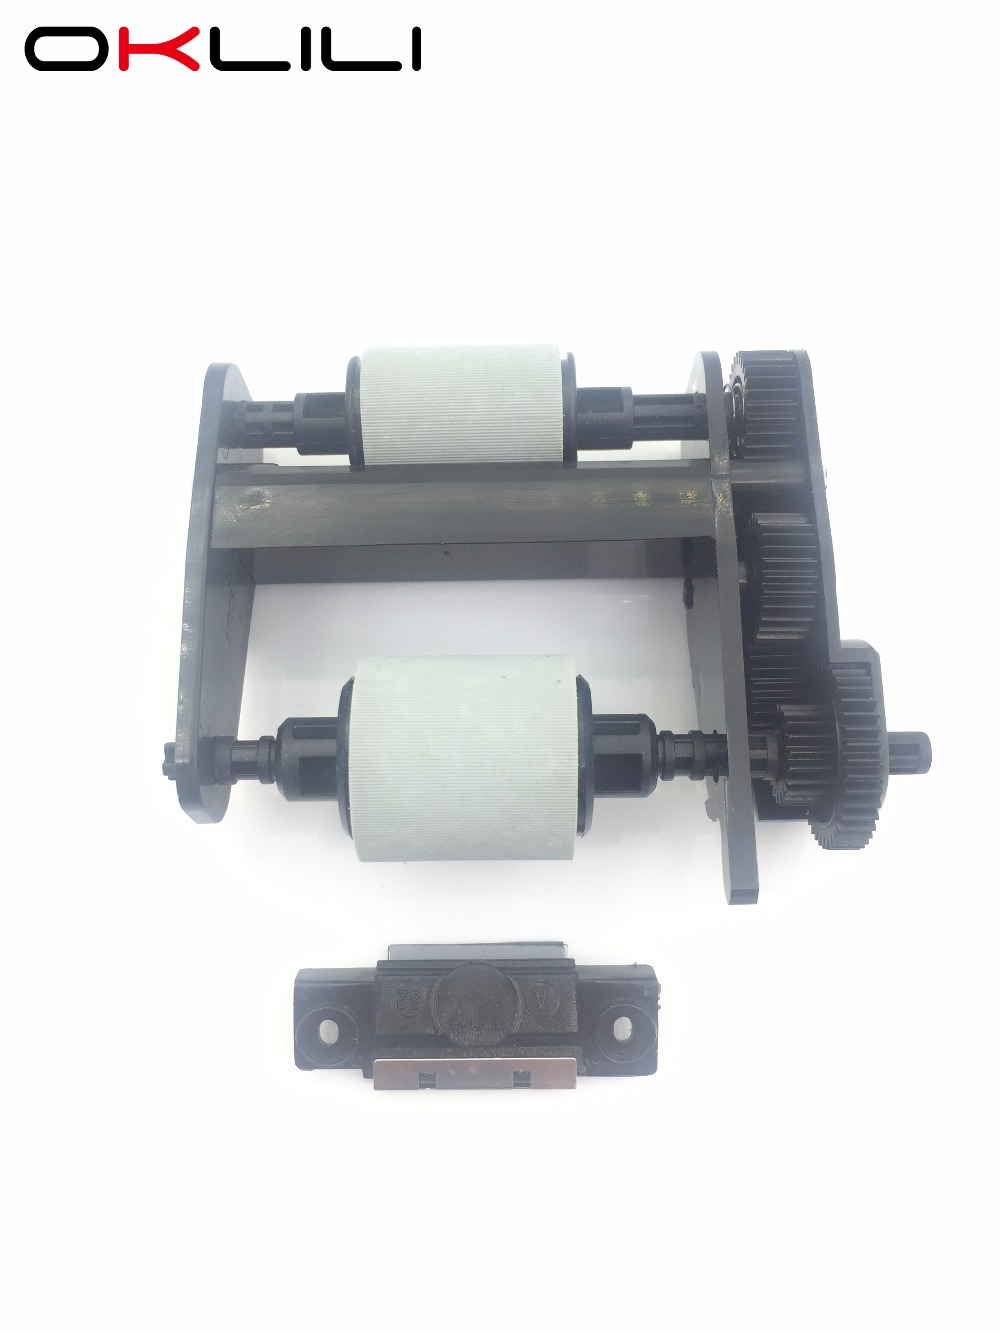 1SET Q3948-67904 5851-3580 ADF Pickup Roller Separation Pad for HP 3030 3300 3310 3320 3330 3380 OfficeJet 6110 6150 L7780 5590 high quality pickup roller and separation pad compatible for hp5000 5100